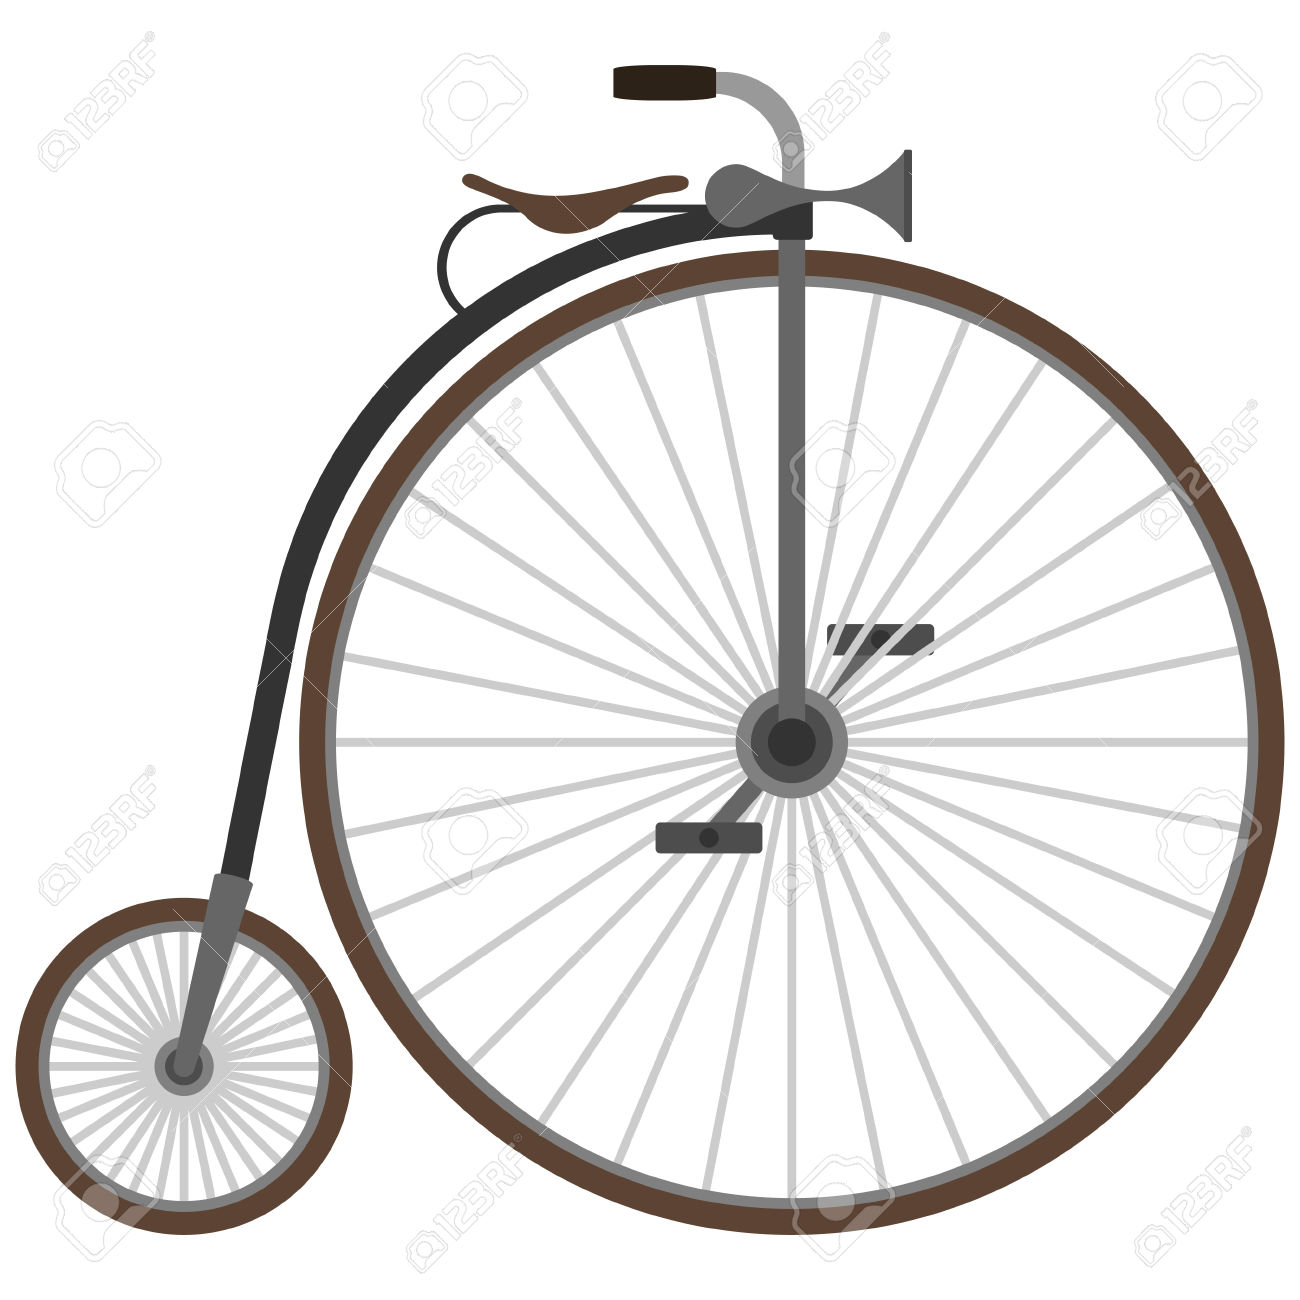 Historic Vehicle. Old Bicycle. The Illustration On A White.